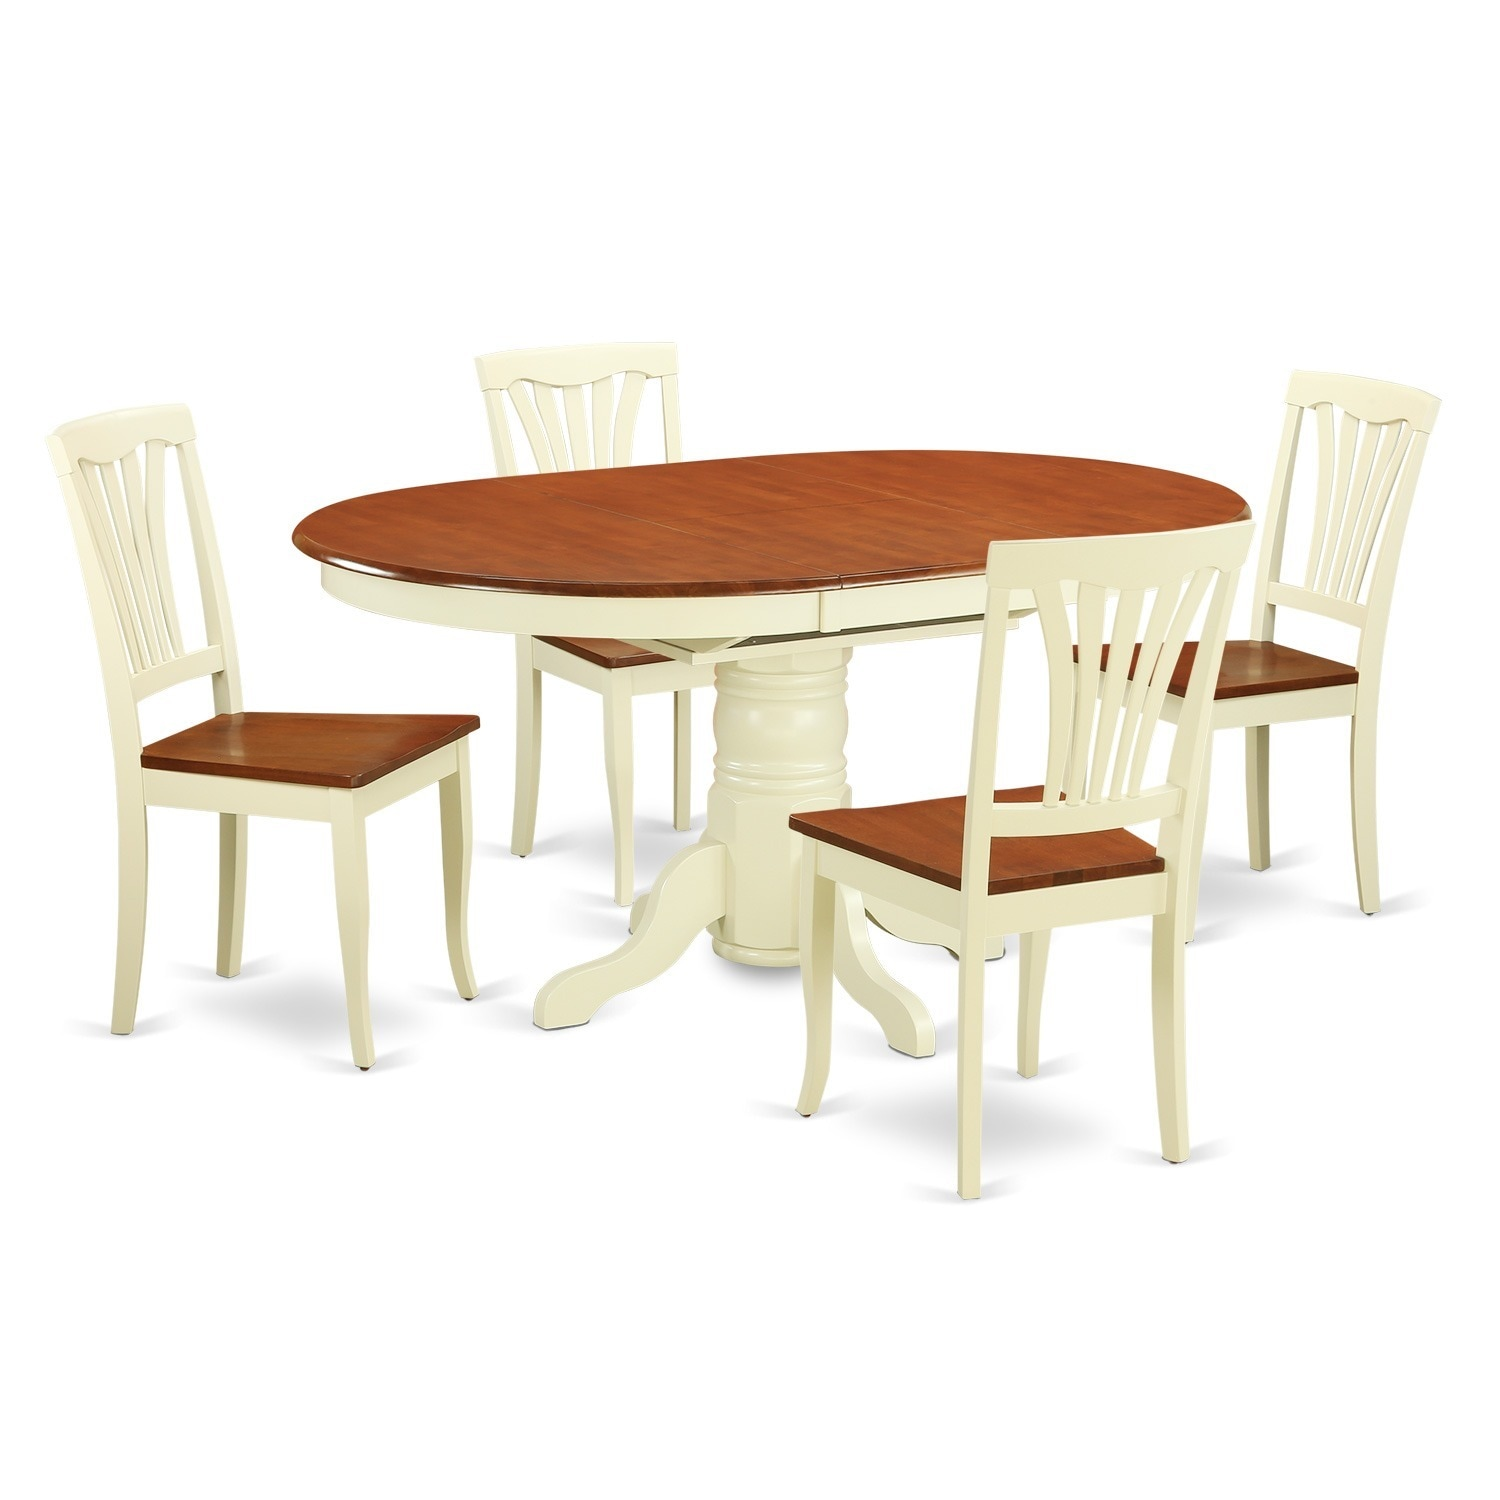 5-piece Oval Dining Table with a Leaf and 4 Dining Chairs...